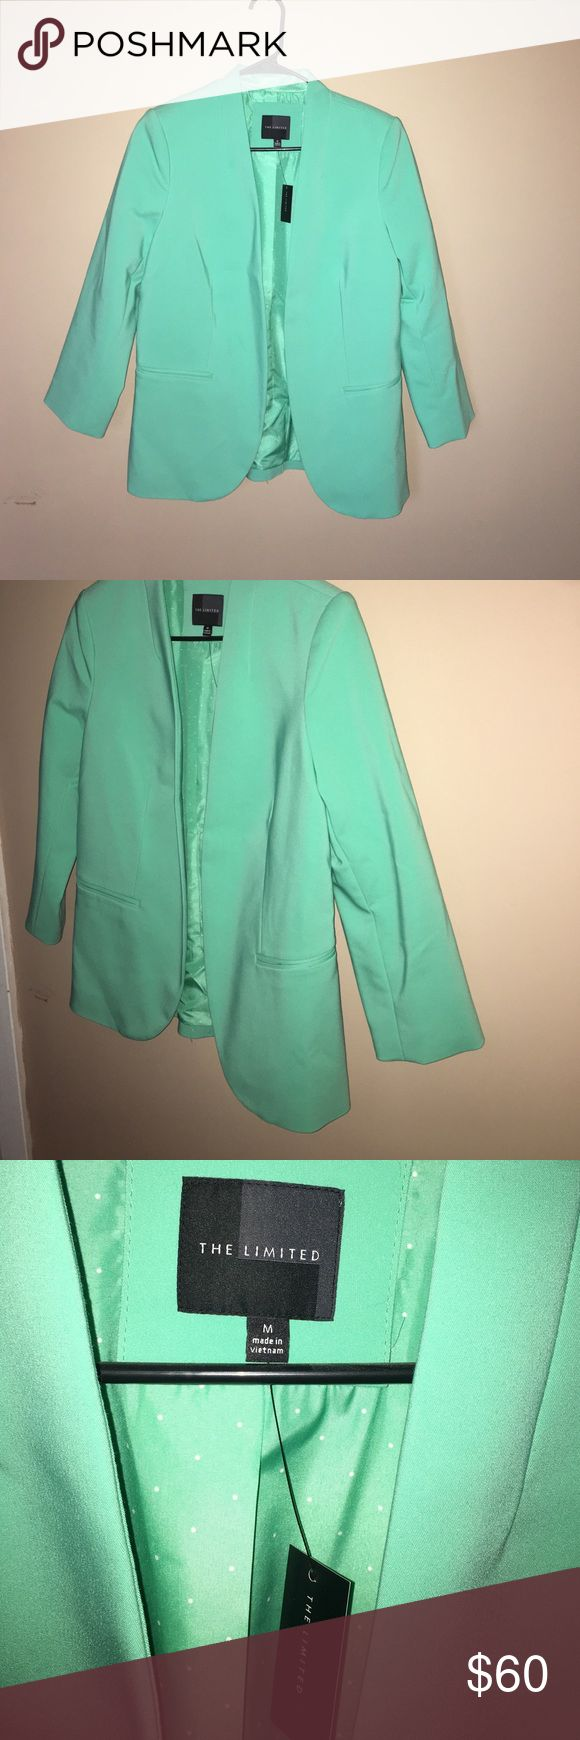 Dark Mint Green Blazer Dark mint green 3/4 sleeve blazer from the Limited. Never worn, tags still on 😊 The Limited Jackets & Coats Blazers